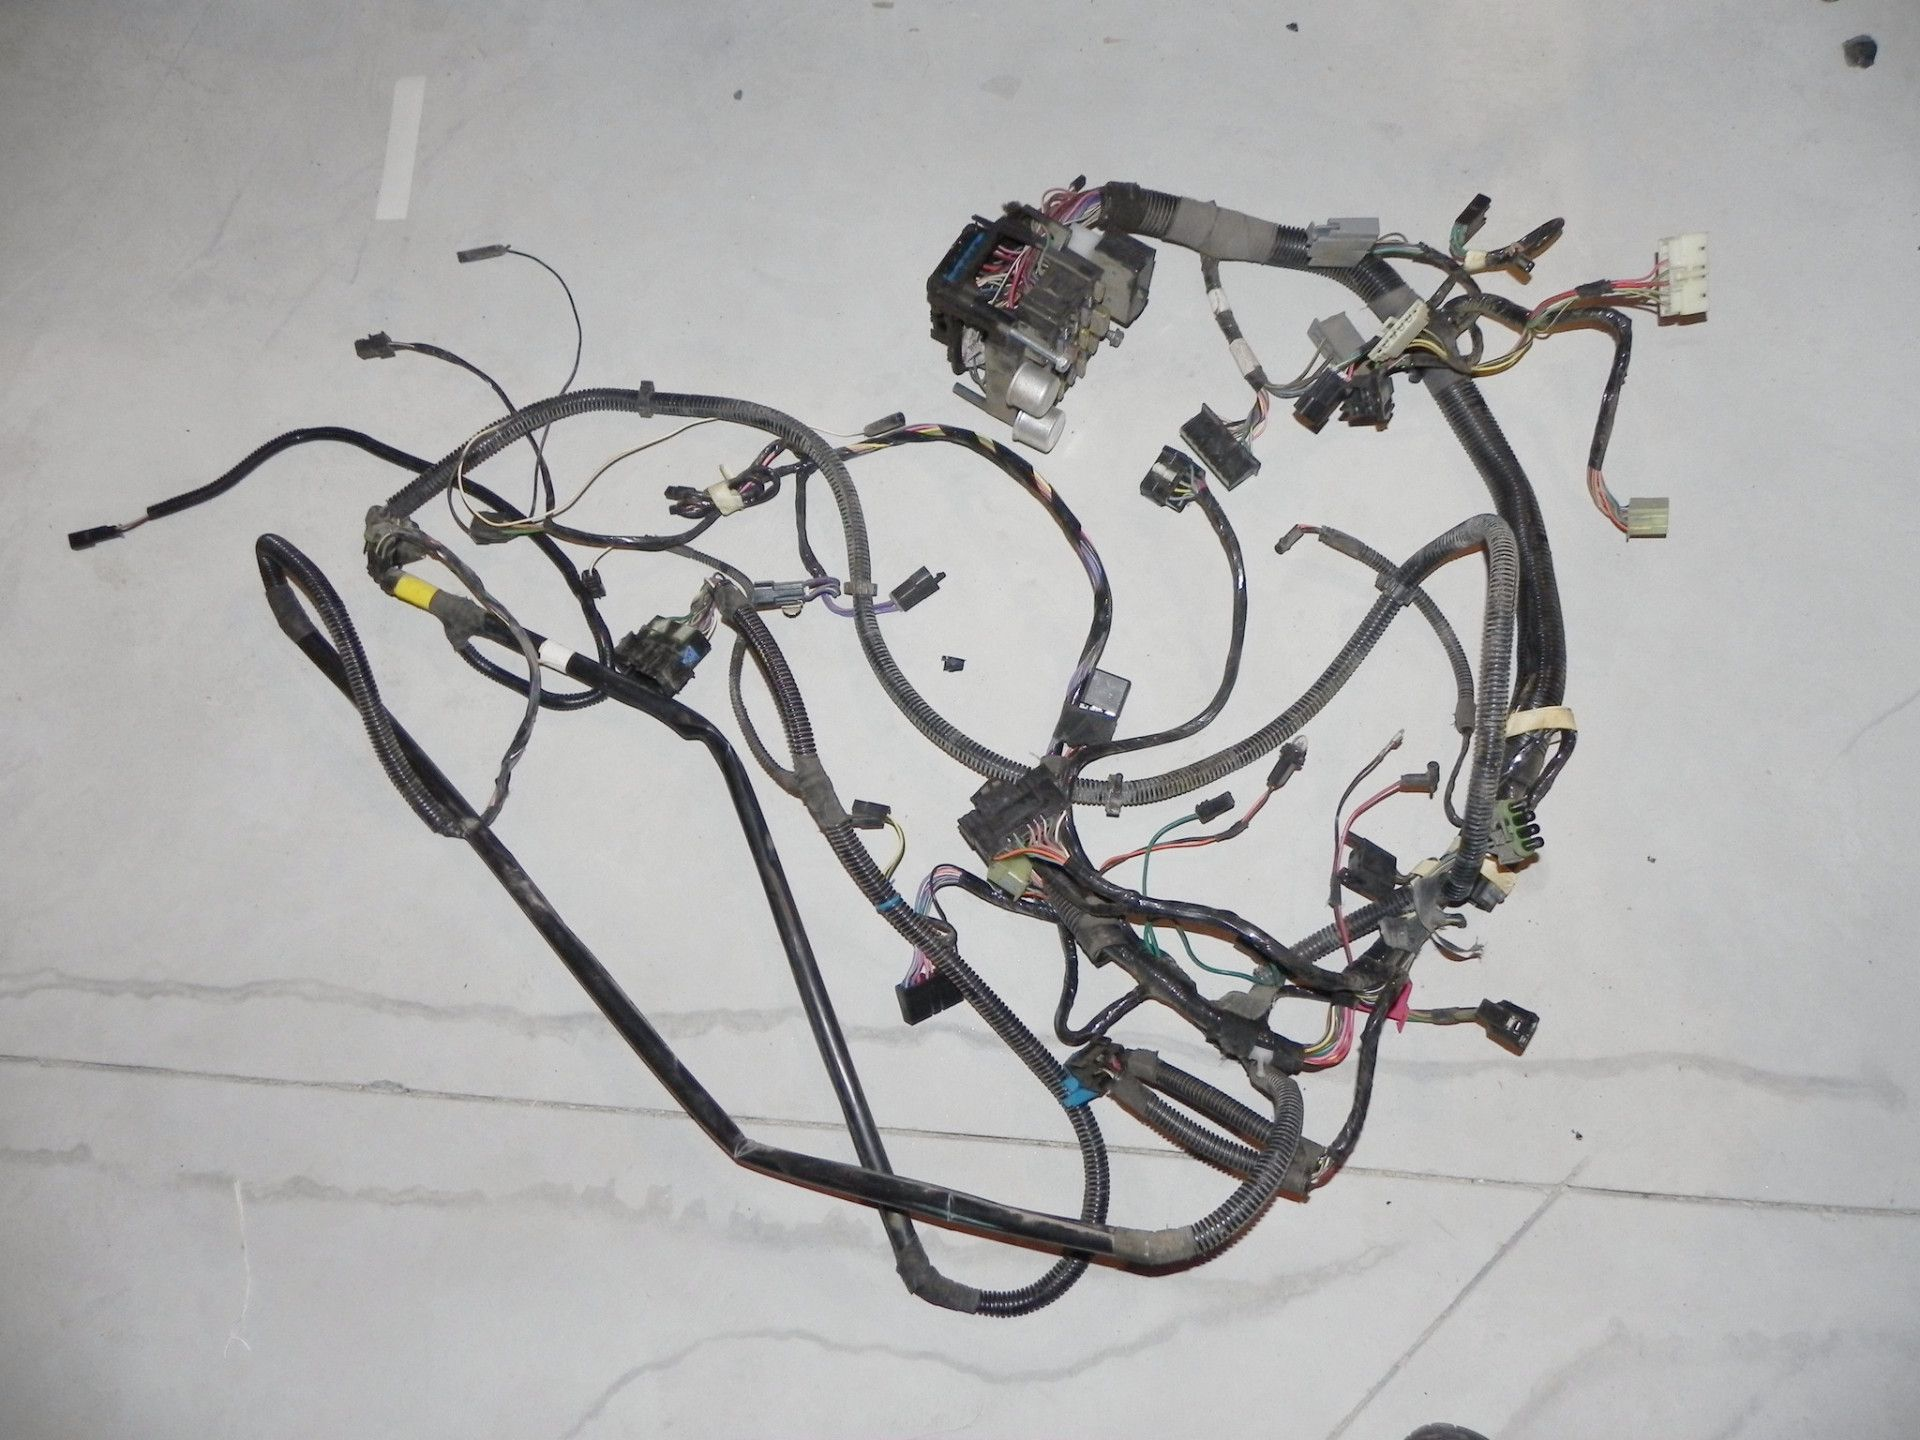 1ac84ff66da6ba86e03de6b4e4edac74 jeep wrangler yj interior under dash wiring harness 92 95 jeep 1987 jeep wrangler wiring harness at gsmx.co